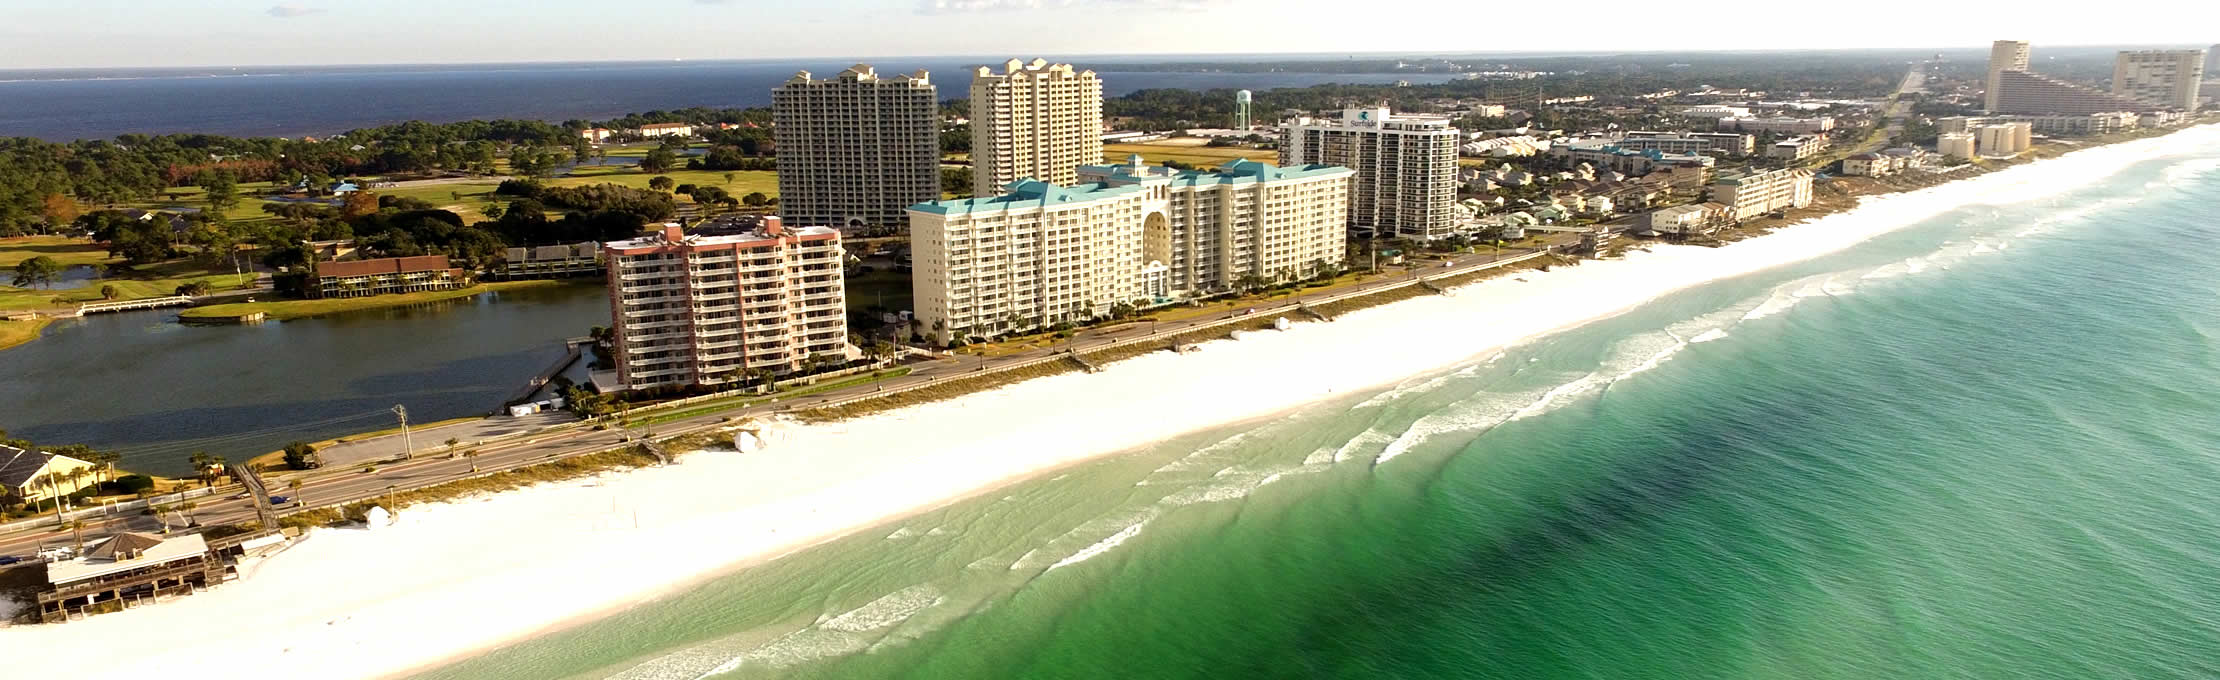 Affordable Destin Resort For Families And Kids Seascape Resort